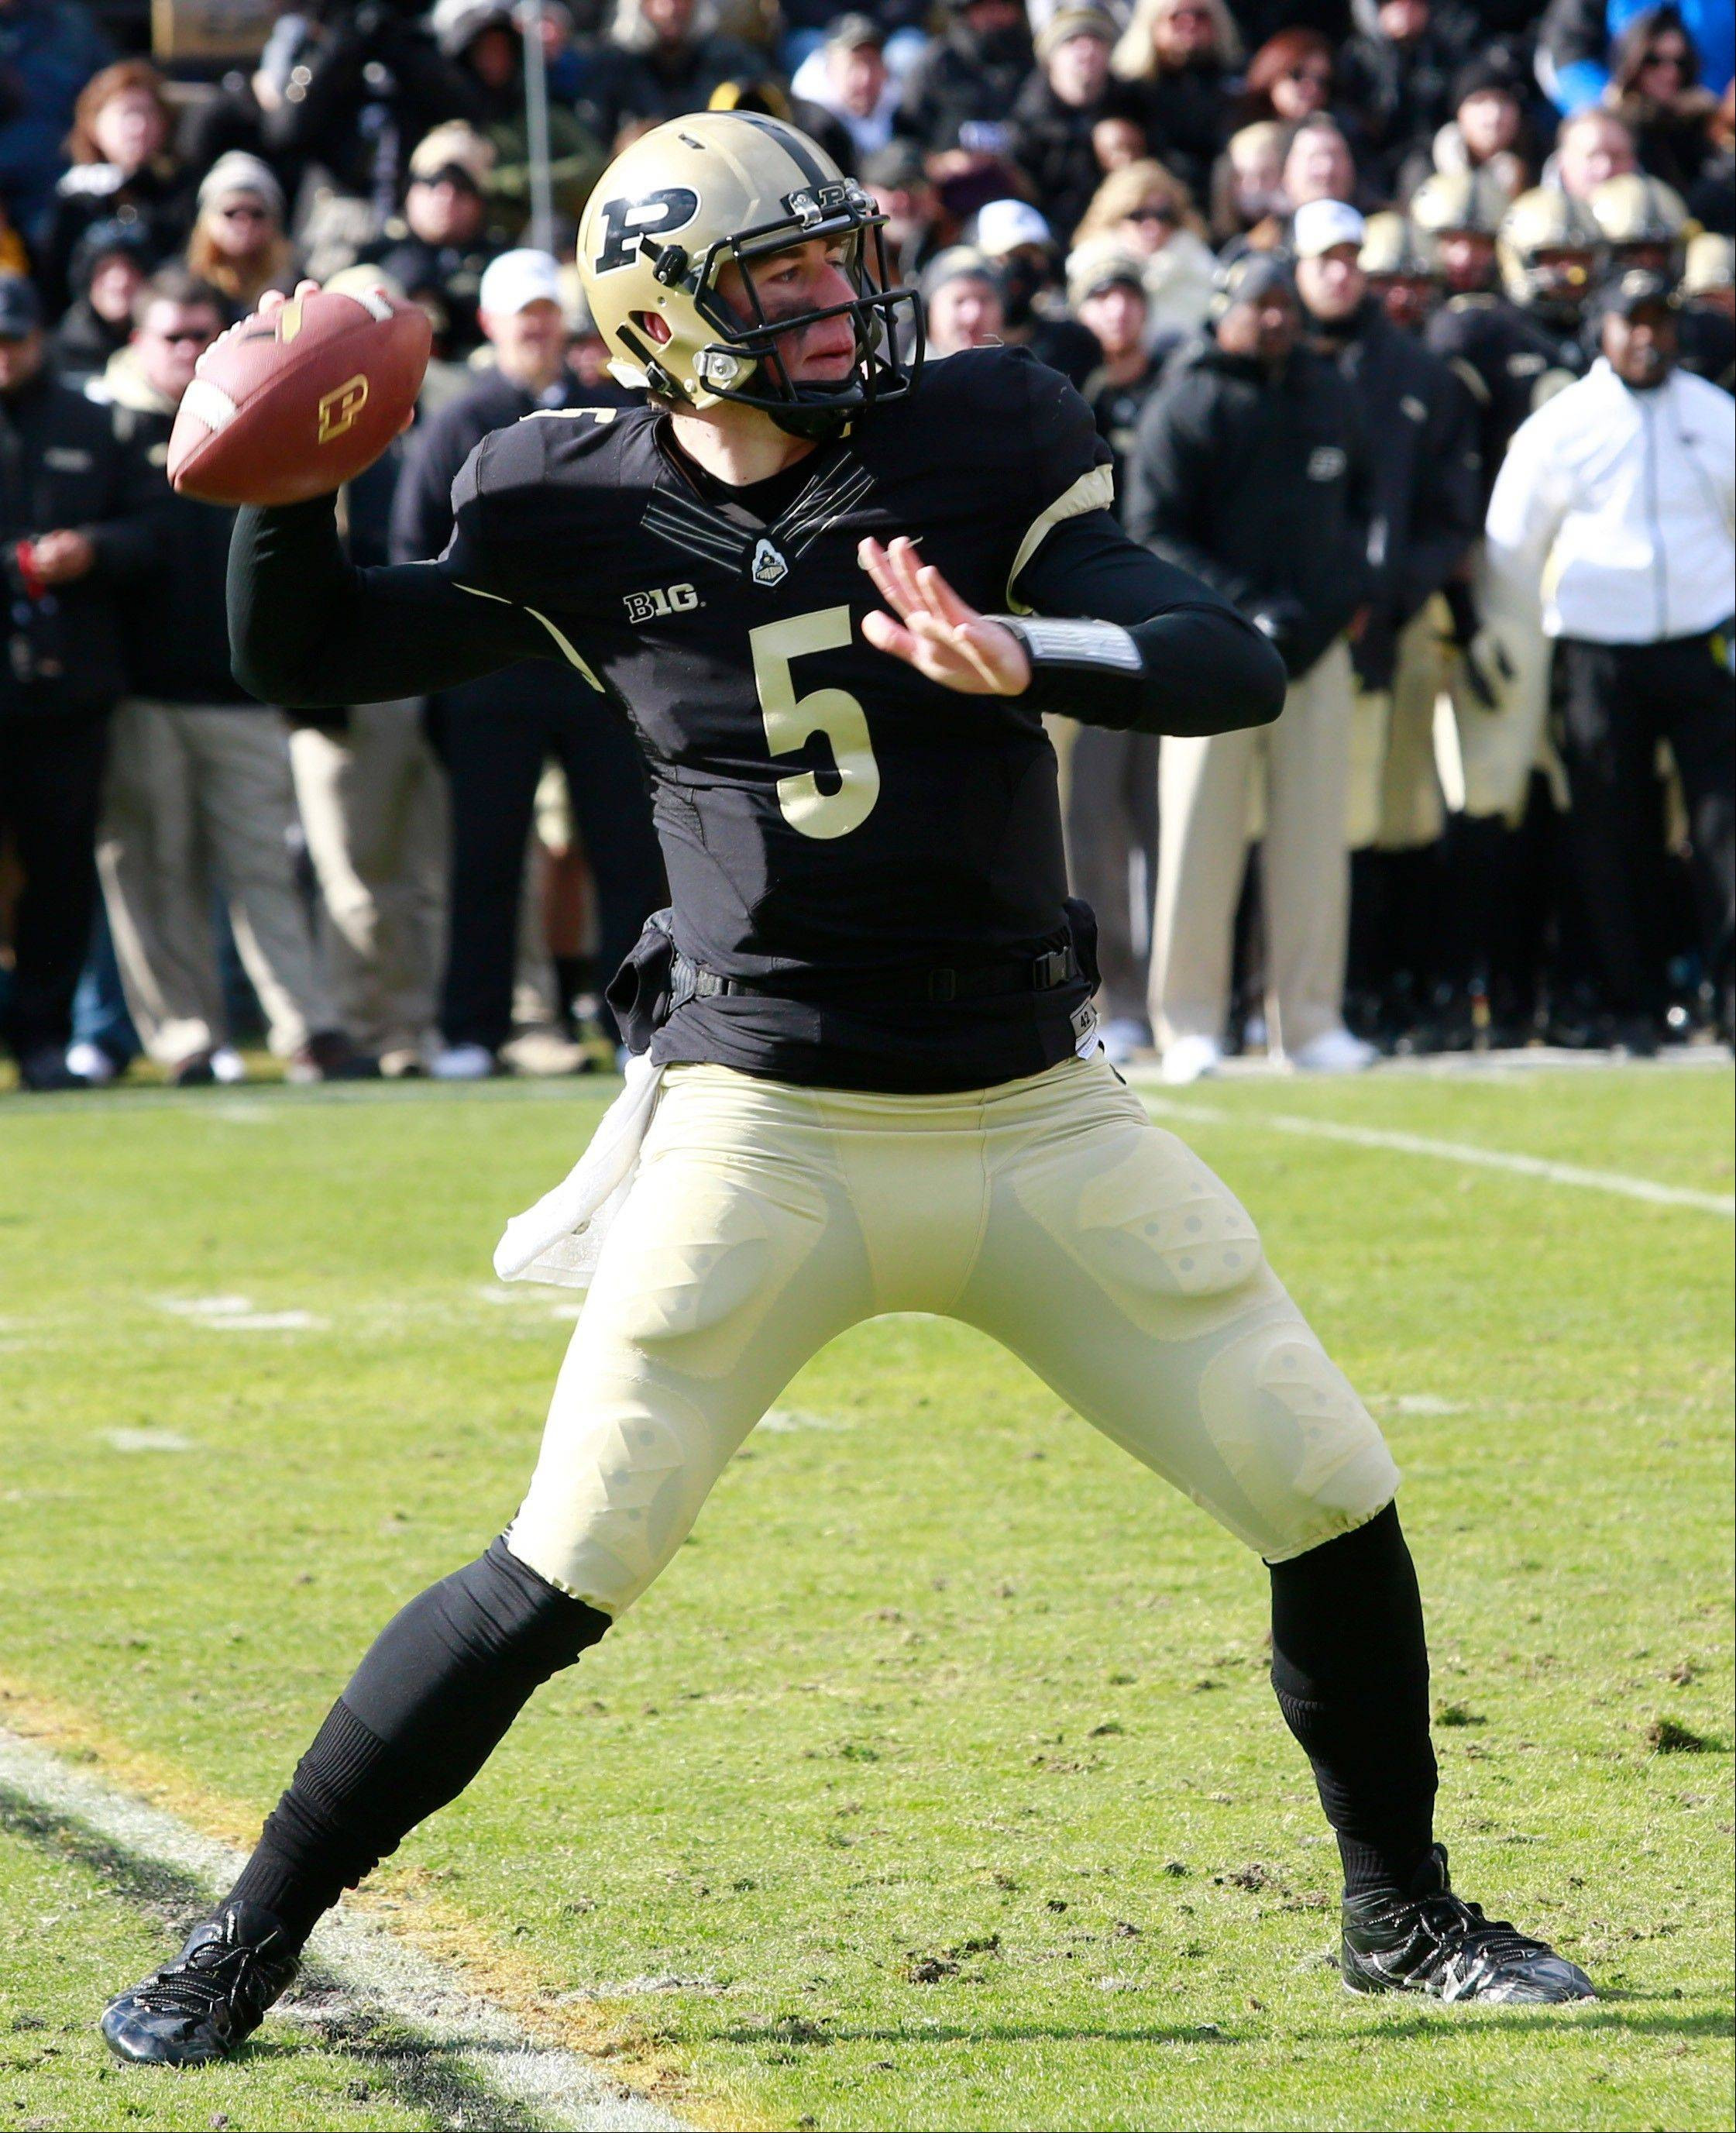 Purdue quarterback Danny Etling throws a pass in the first half of last Saturday's home loss to Illinois. The Boilermakers haven't had a winless Big Ten season since 1993 and are trying to avoid a 10th consecutive loss.